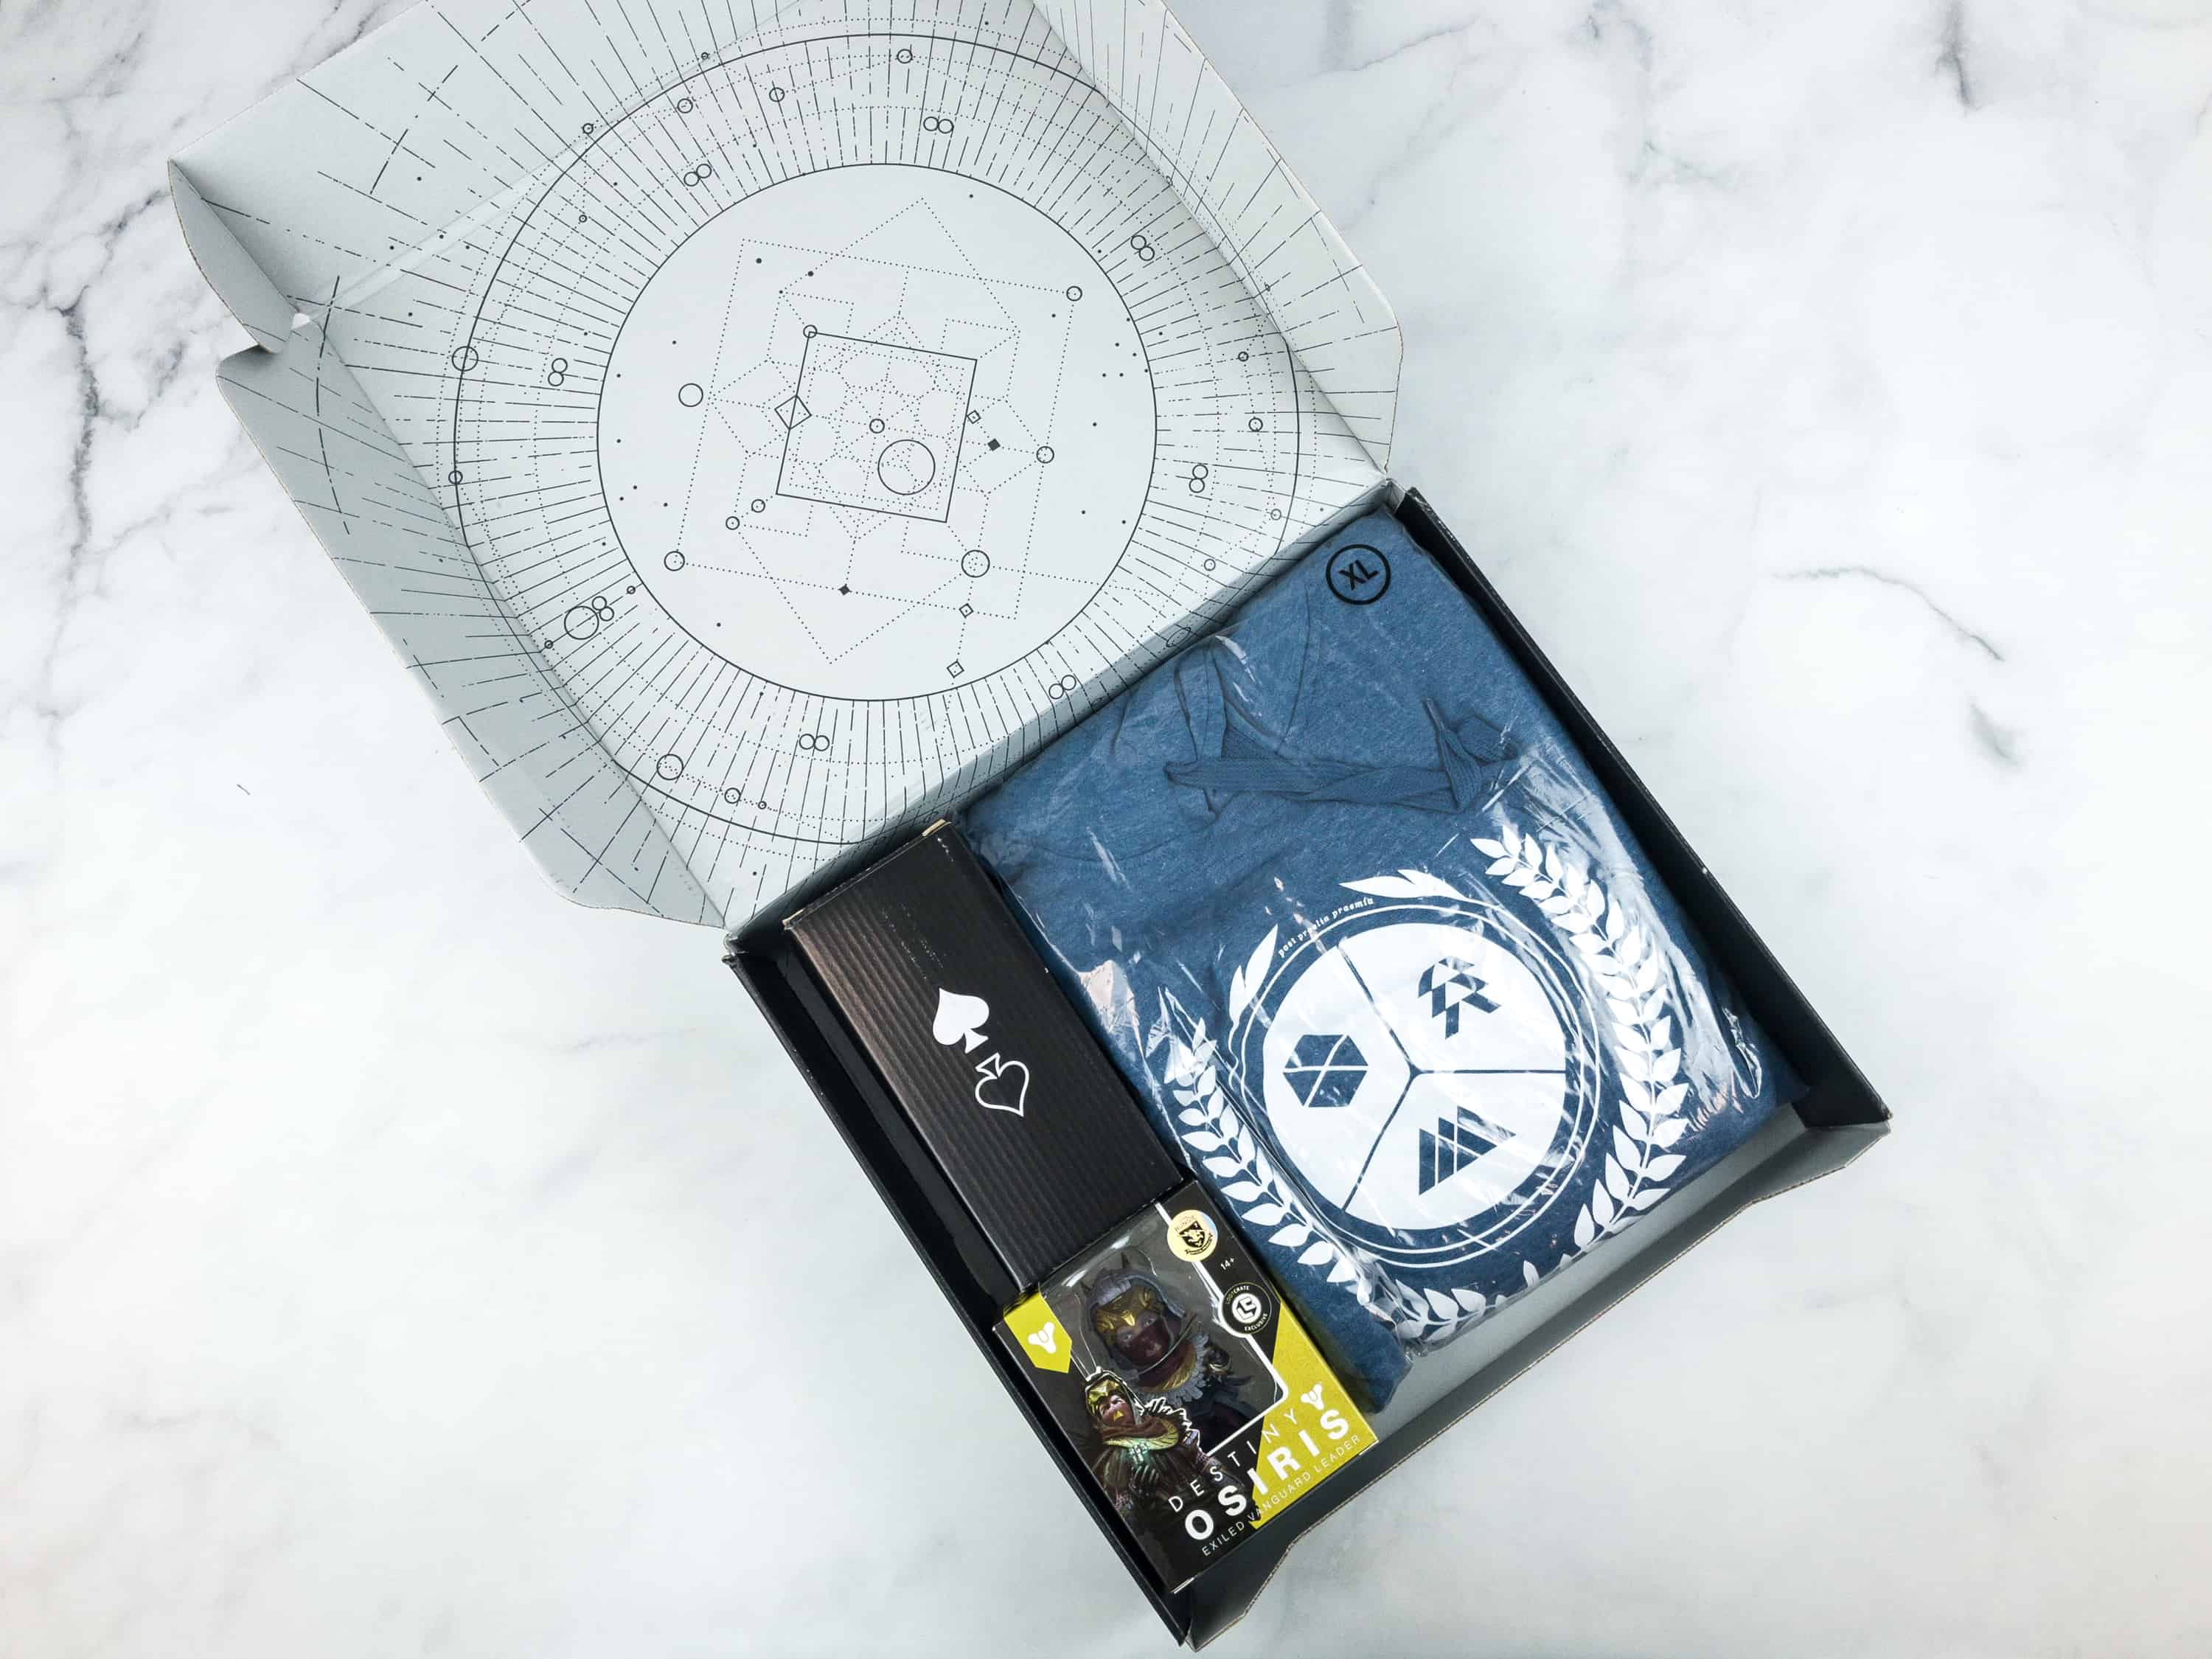 Loot Crate Destiny 2 Limited Edition Crate Review - hello